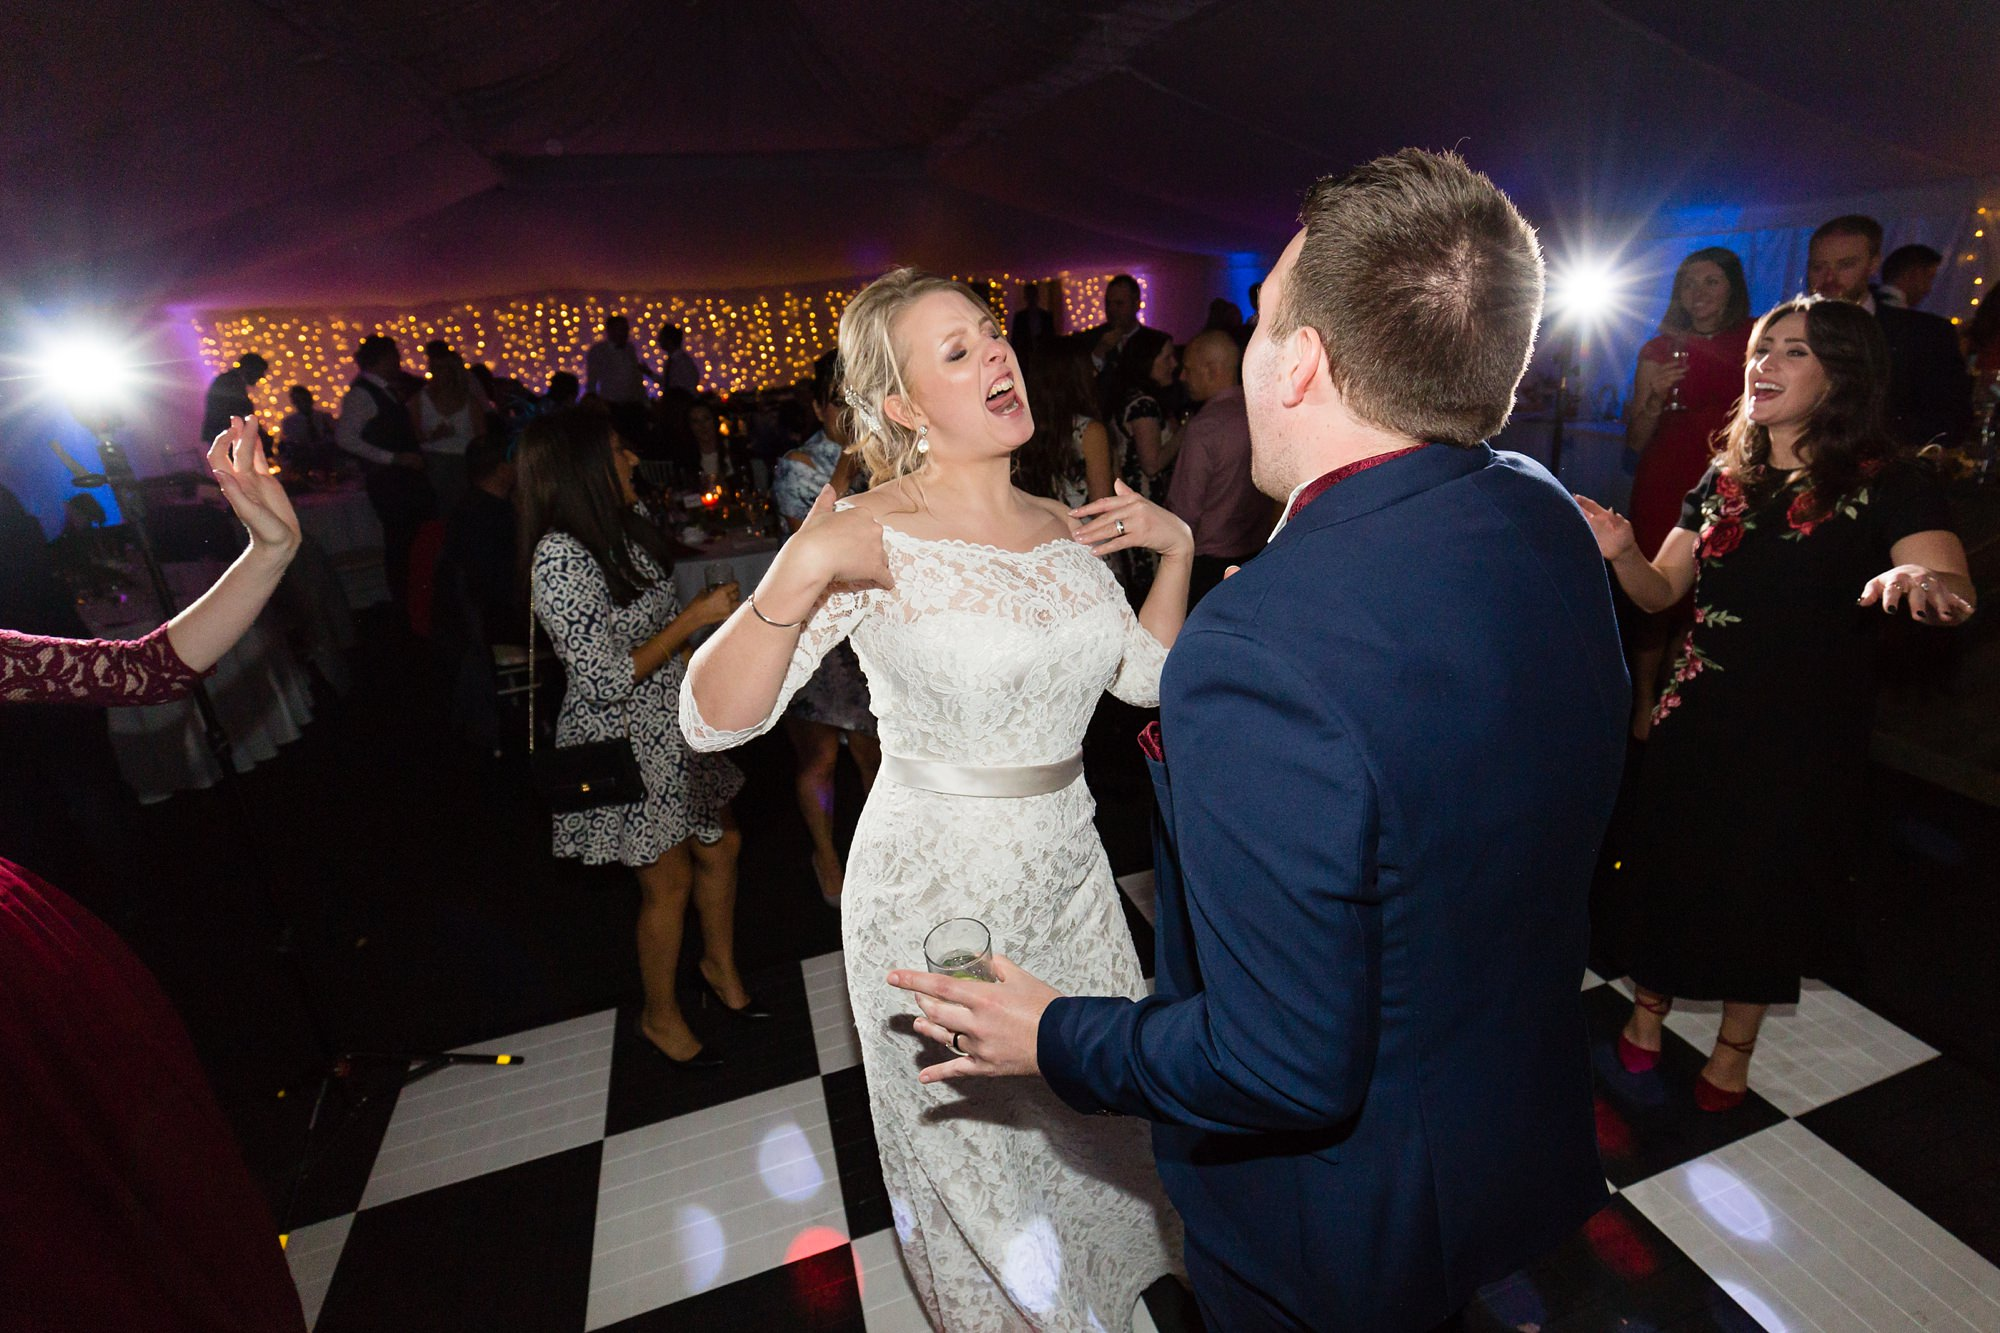 Bride & Groom dancing at wedding at The Normans in York